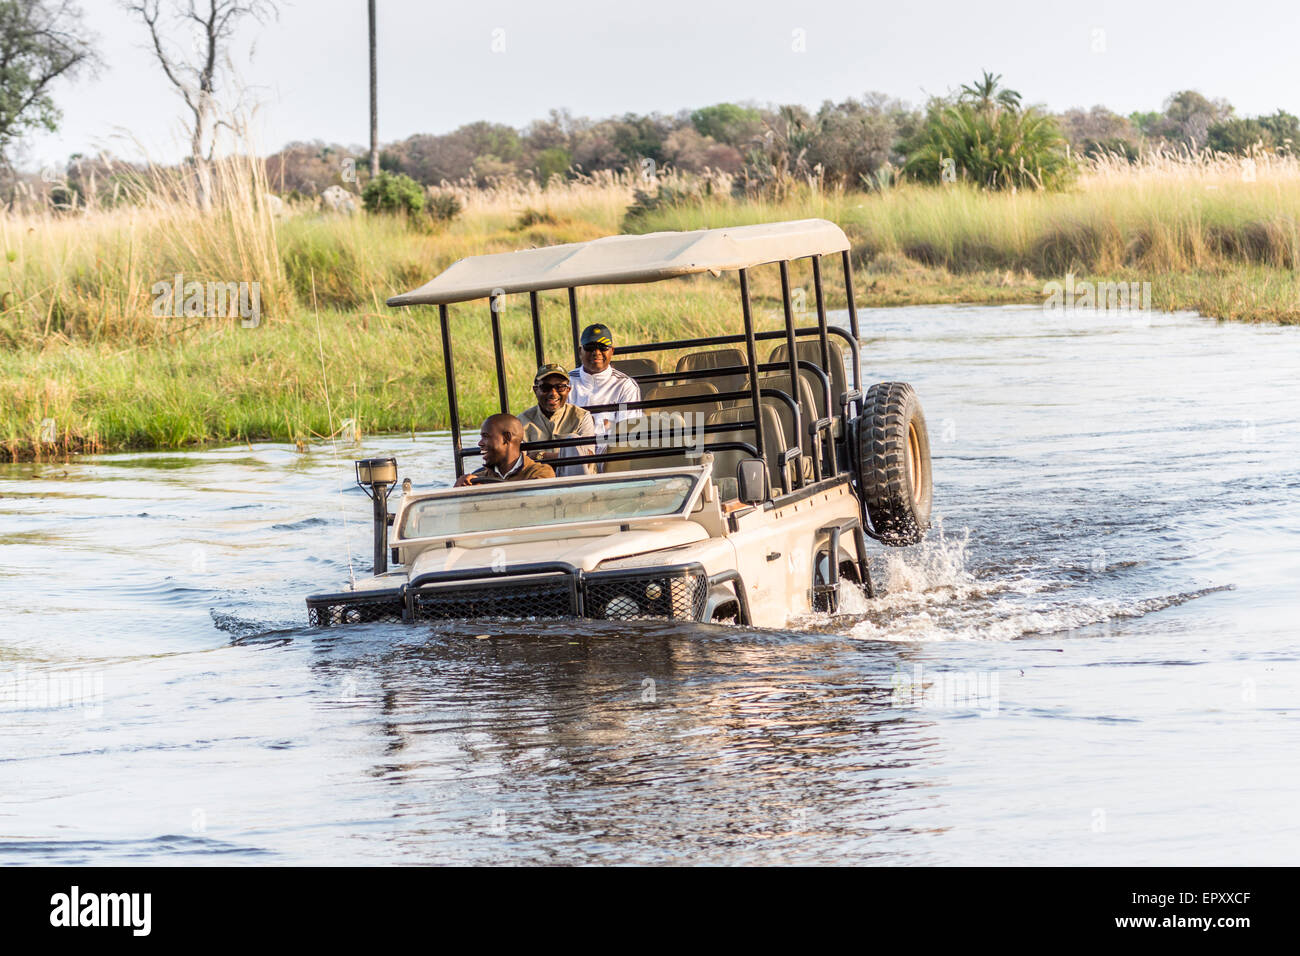 Safari jeep with driver and tourists laughing and having fun, fording a deep river in the Okavango Delta, Botswana - Stock Image